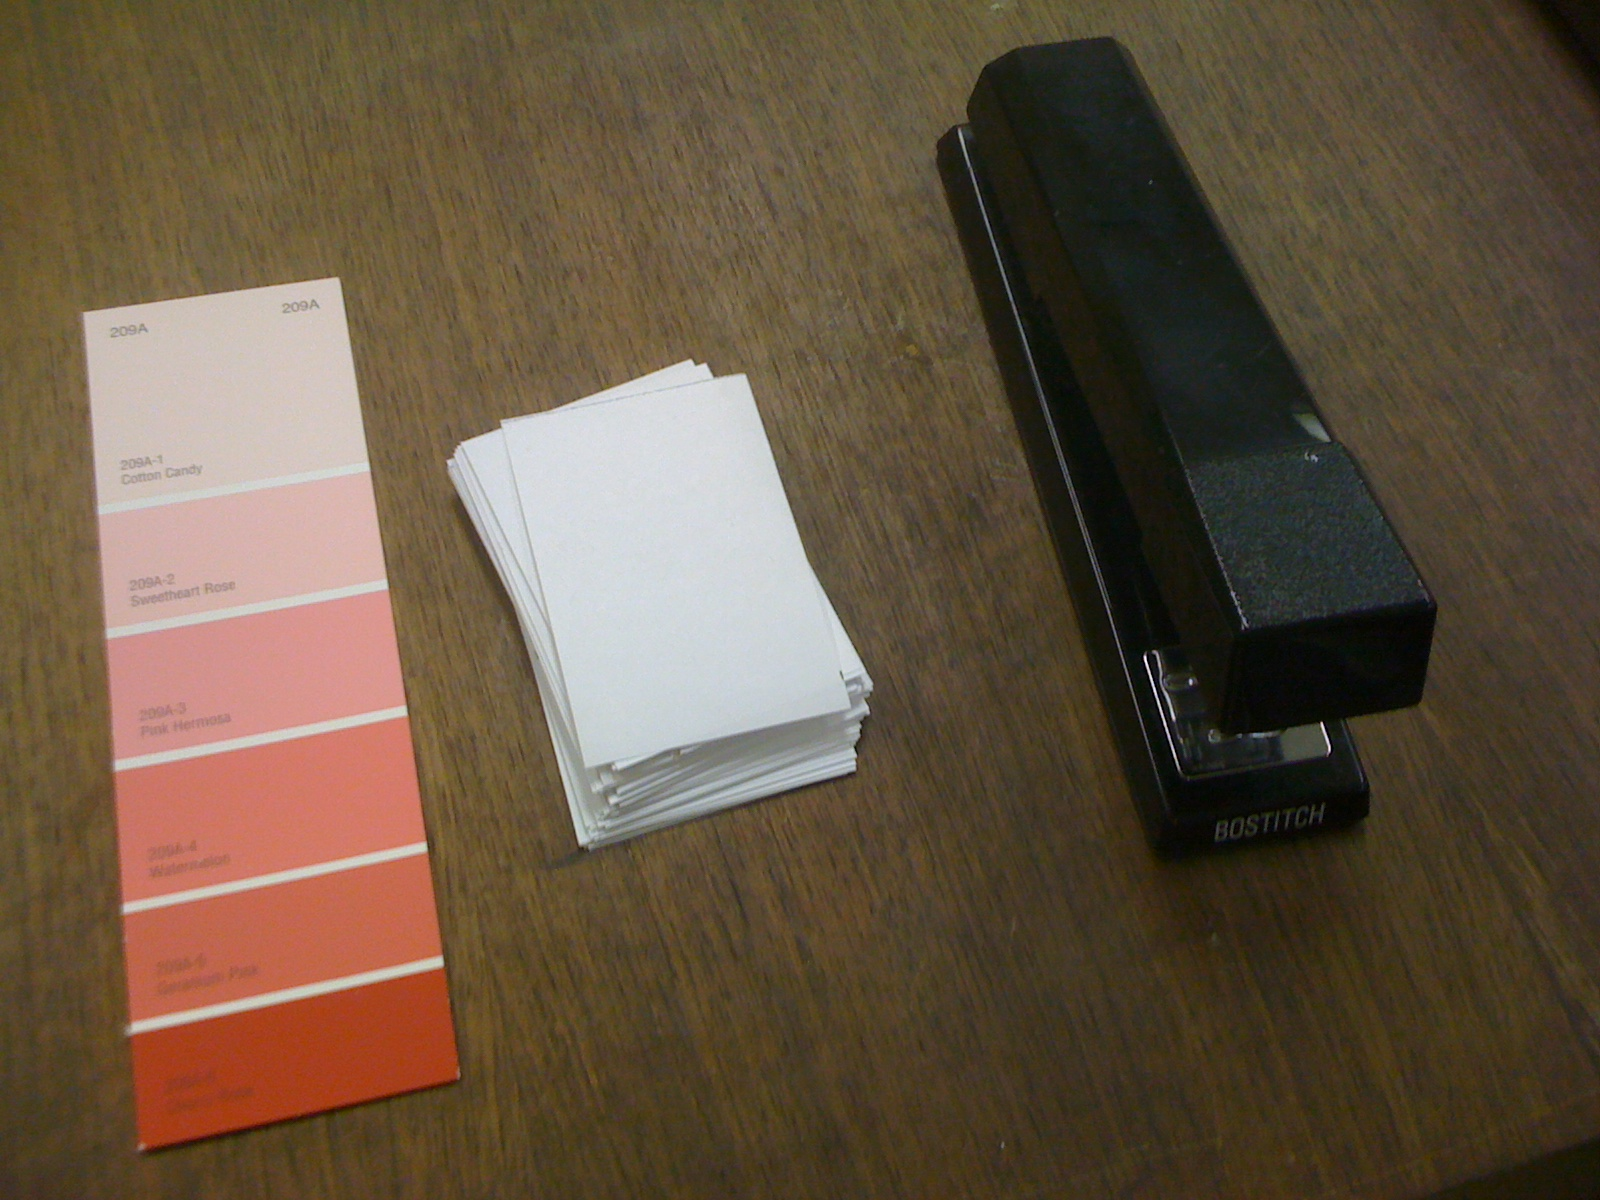 remodel this house paint chip business cards diy